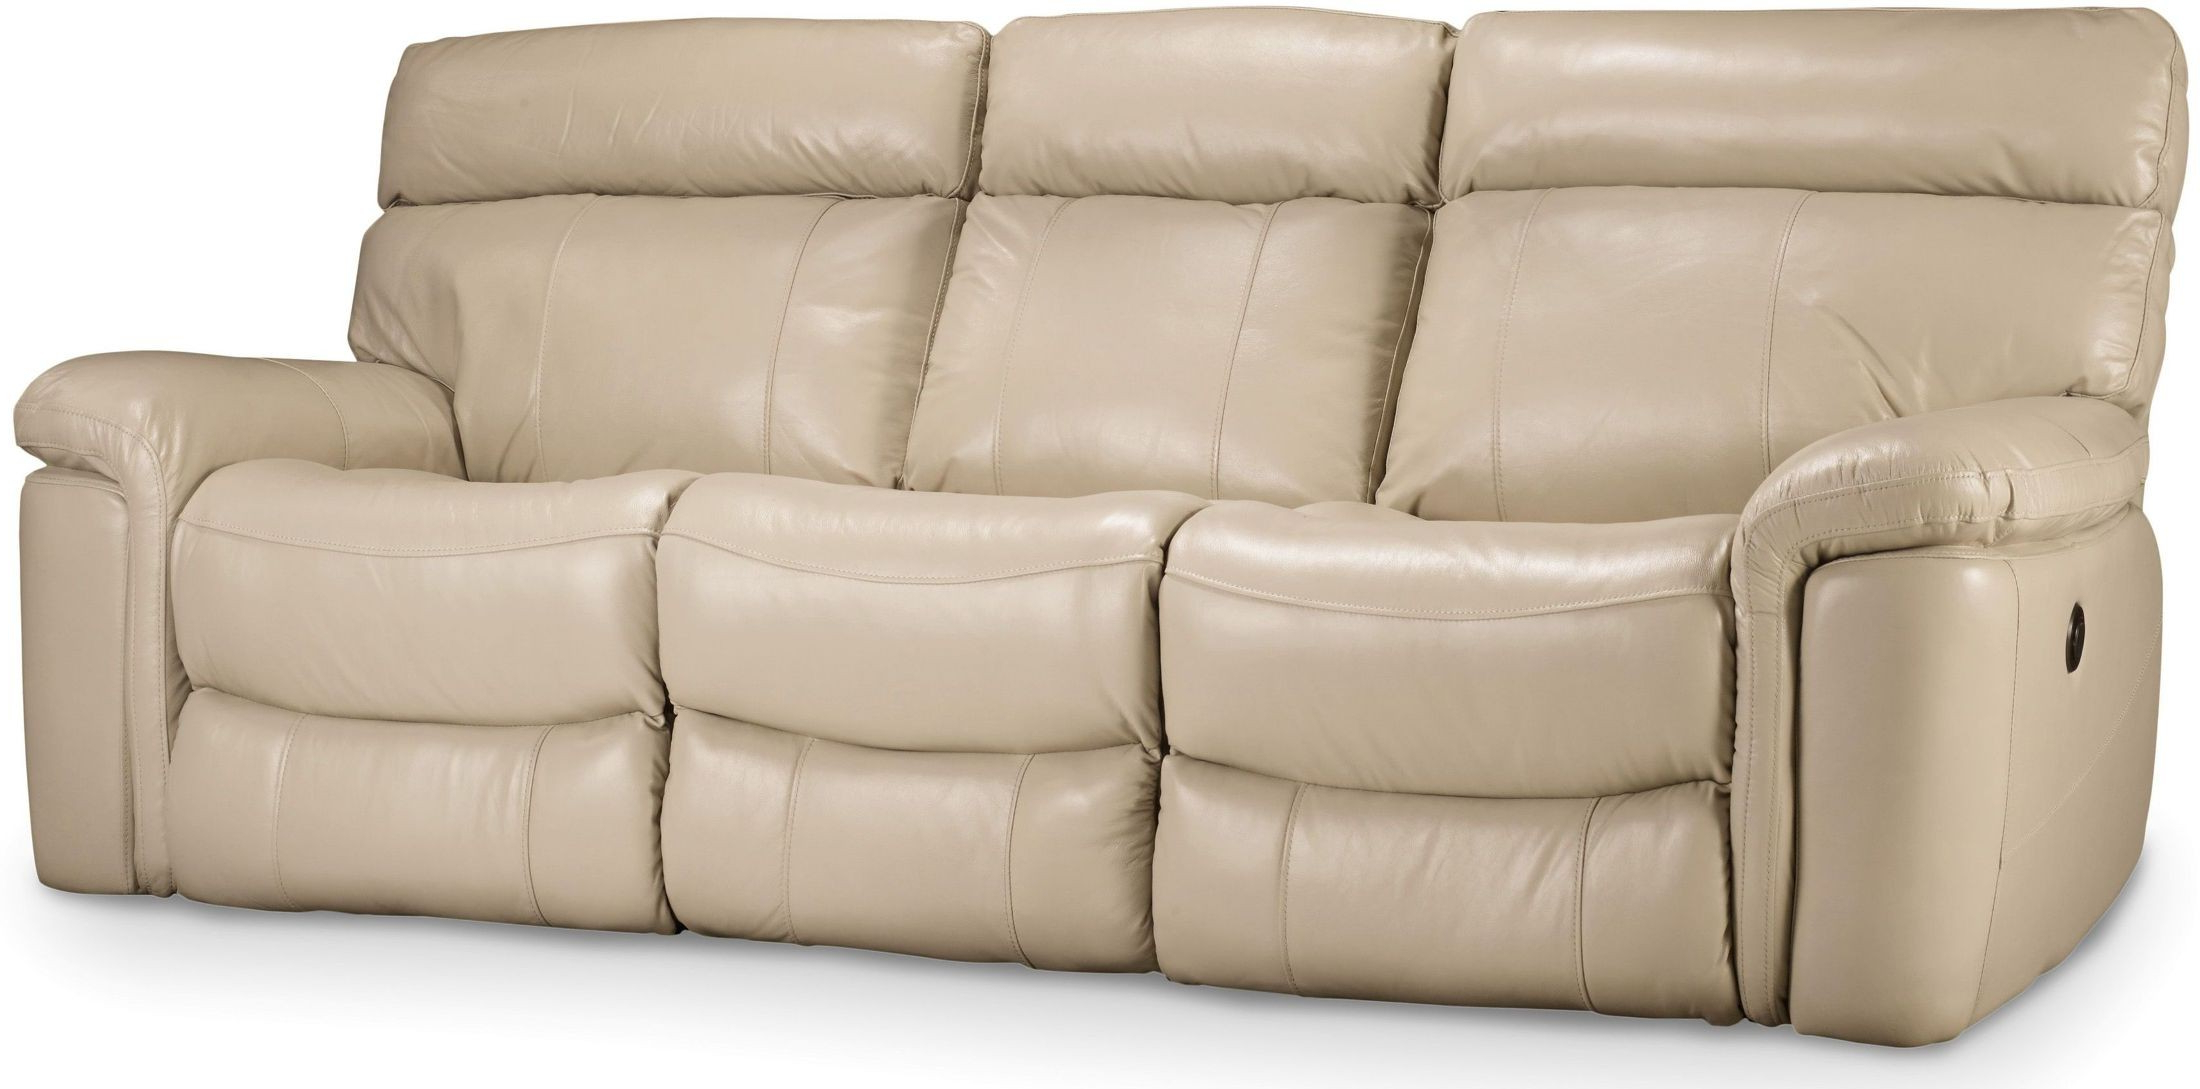 Most Recently Released Beige Sofas Regarding Melanie Beige Leather Reclining Sofa, Ss620 03 082, Hooker (View 16 of 20)